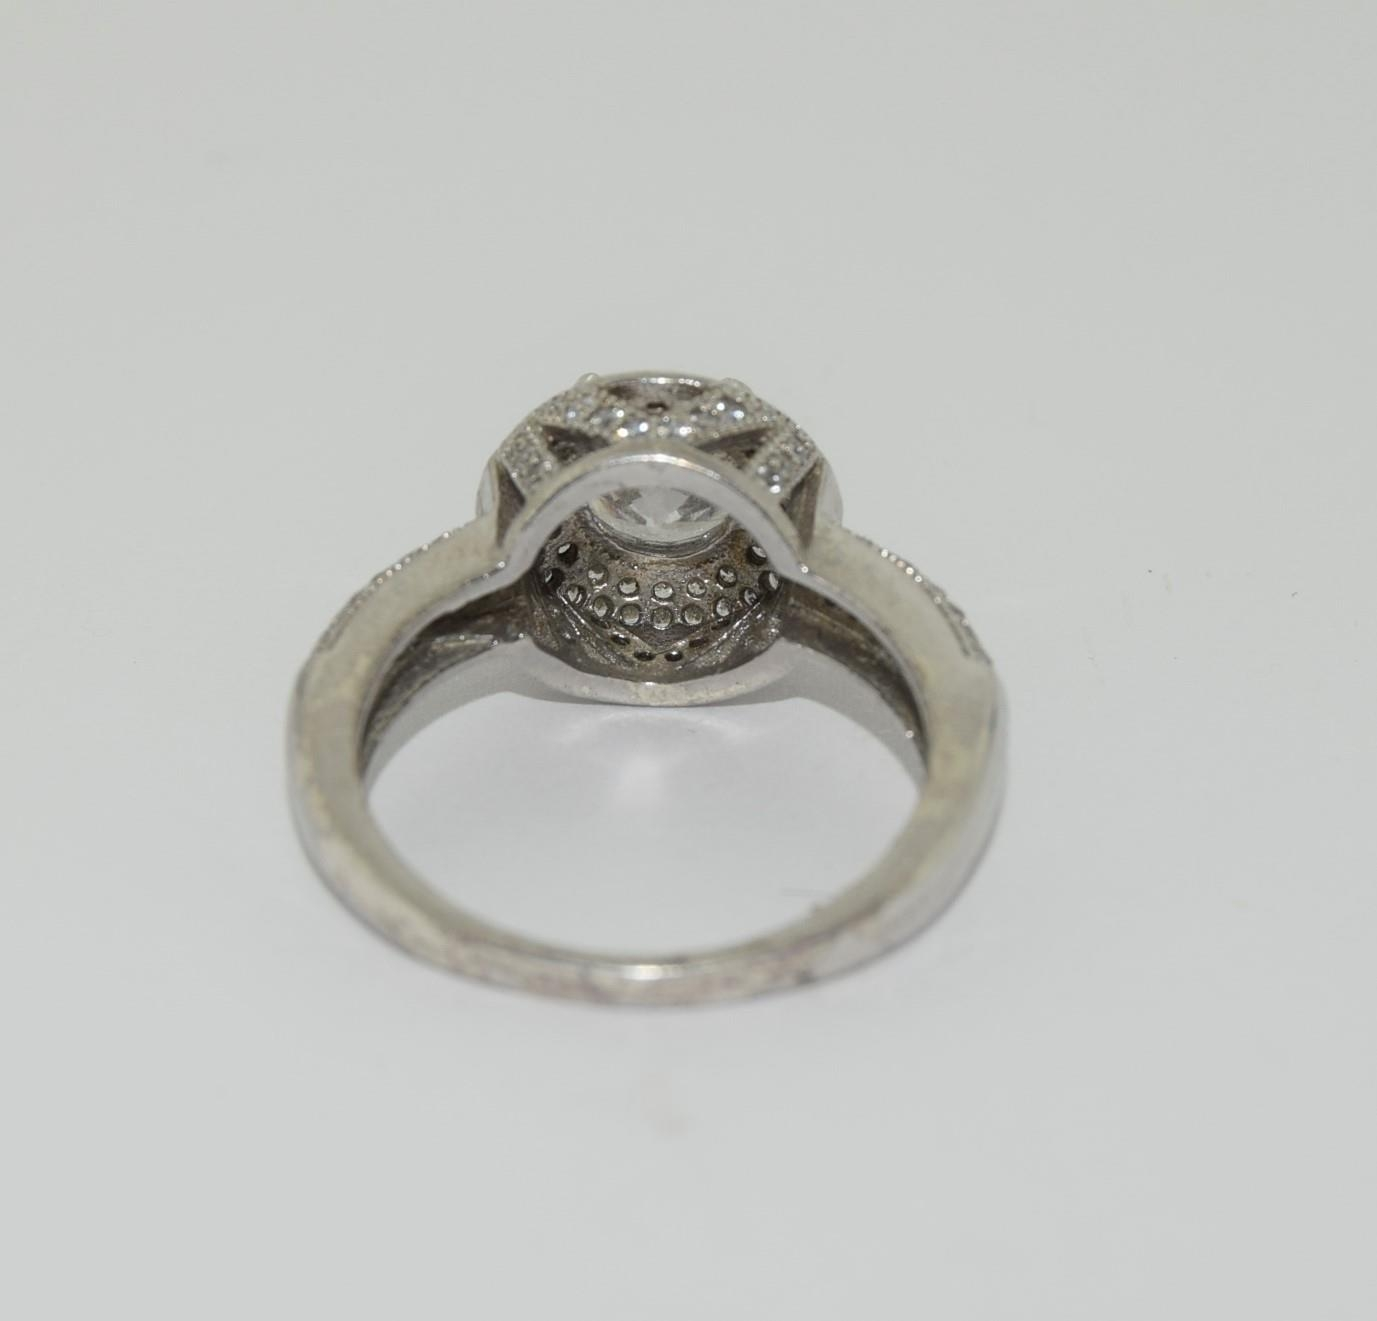 Silver ladies ring in the Halo style. Size P. - Image 3 of 3